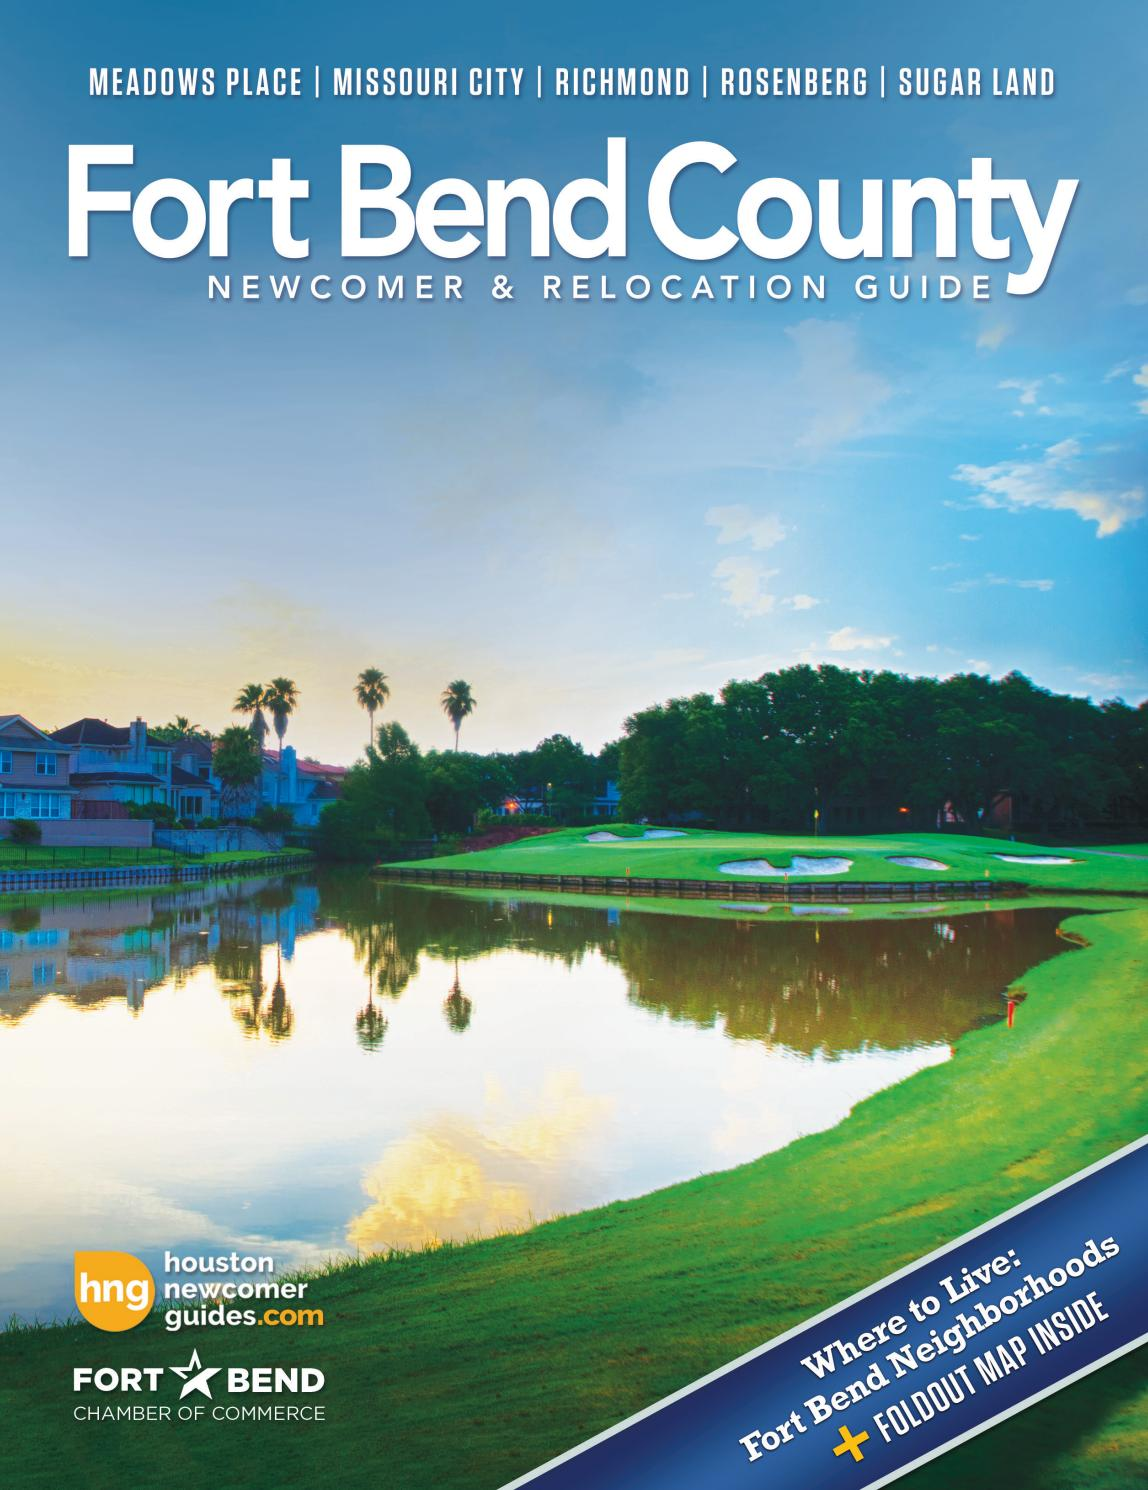 Fort Bend Newcomer & Relocation Guide - 2019 Volume 1 by web